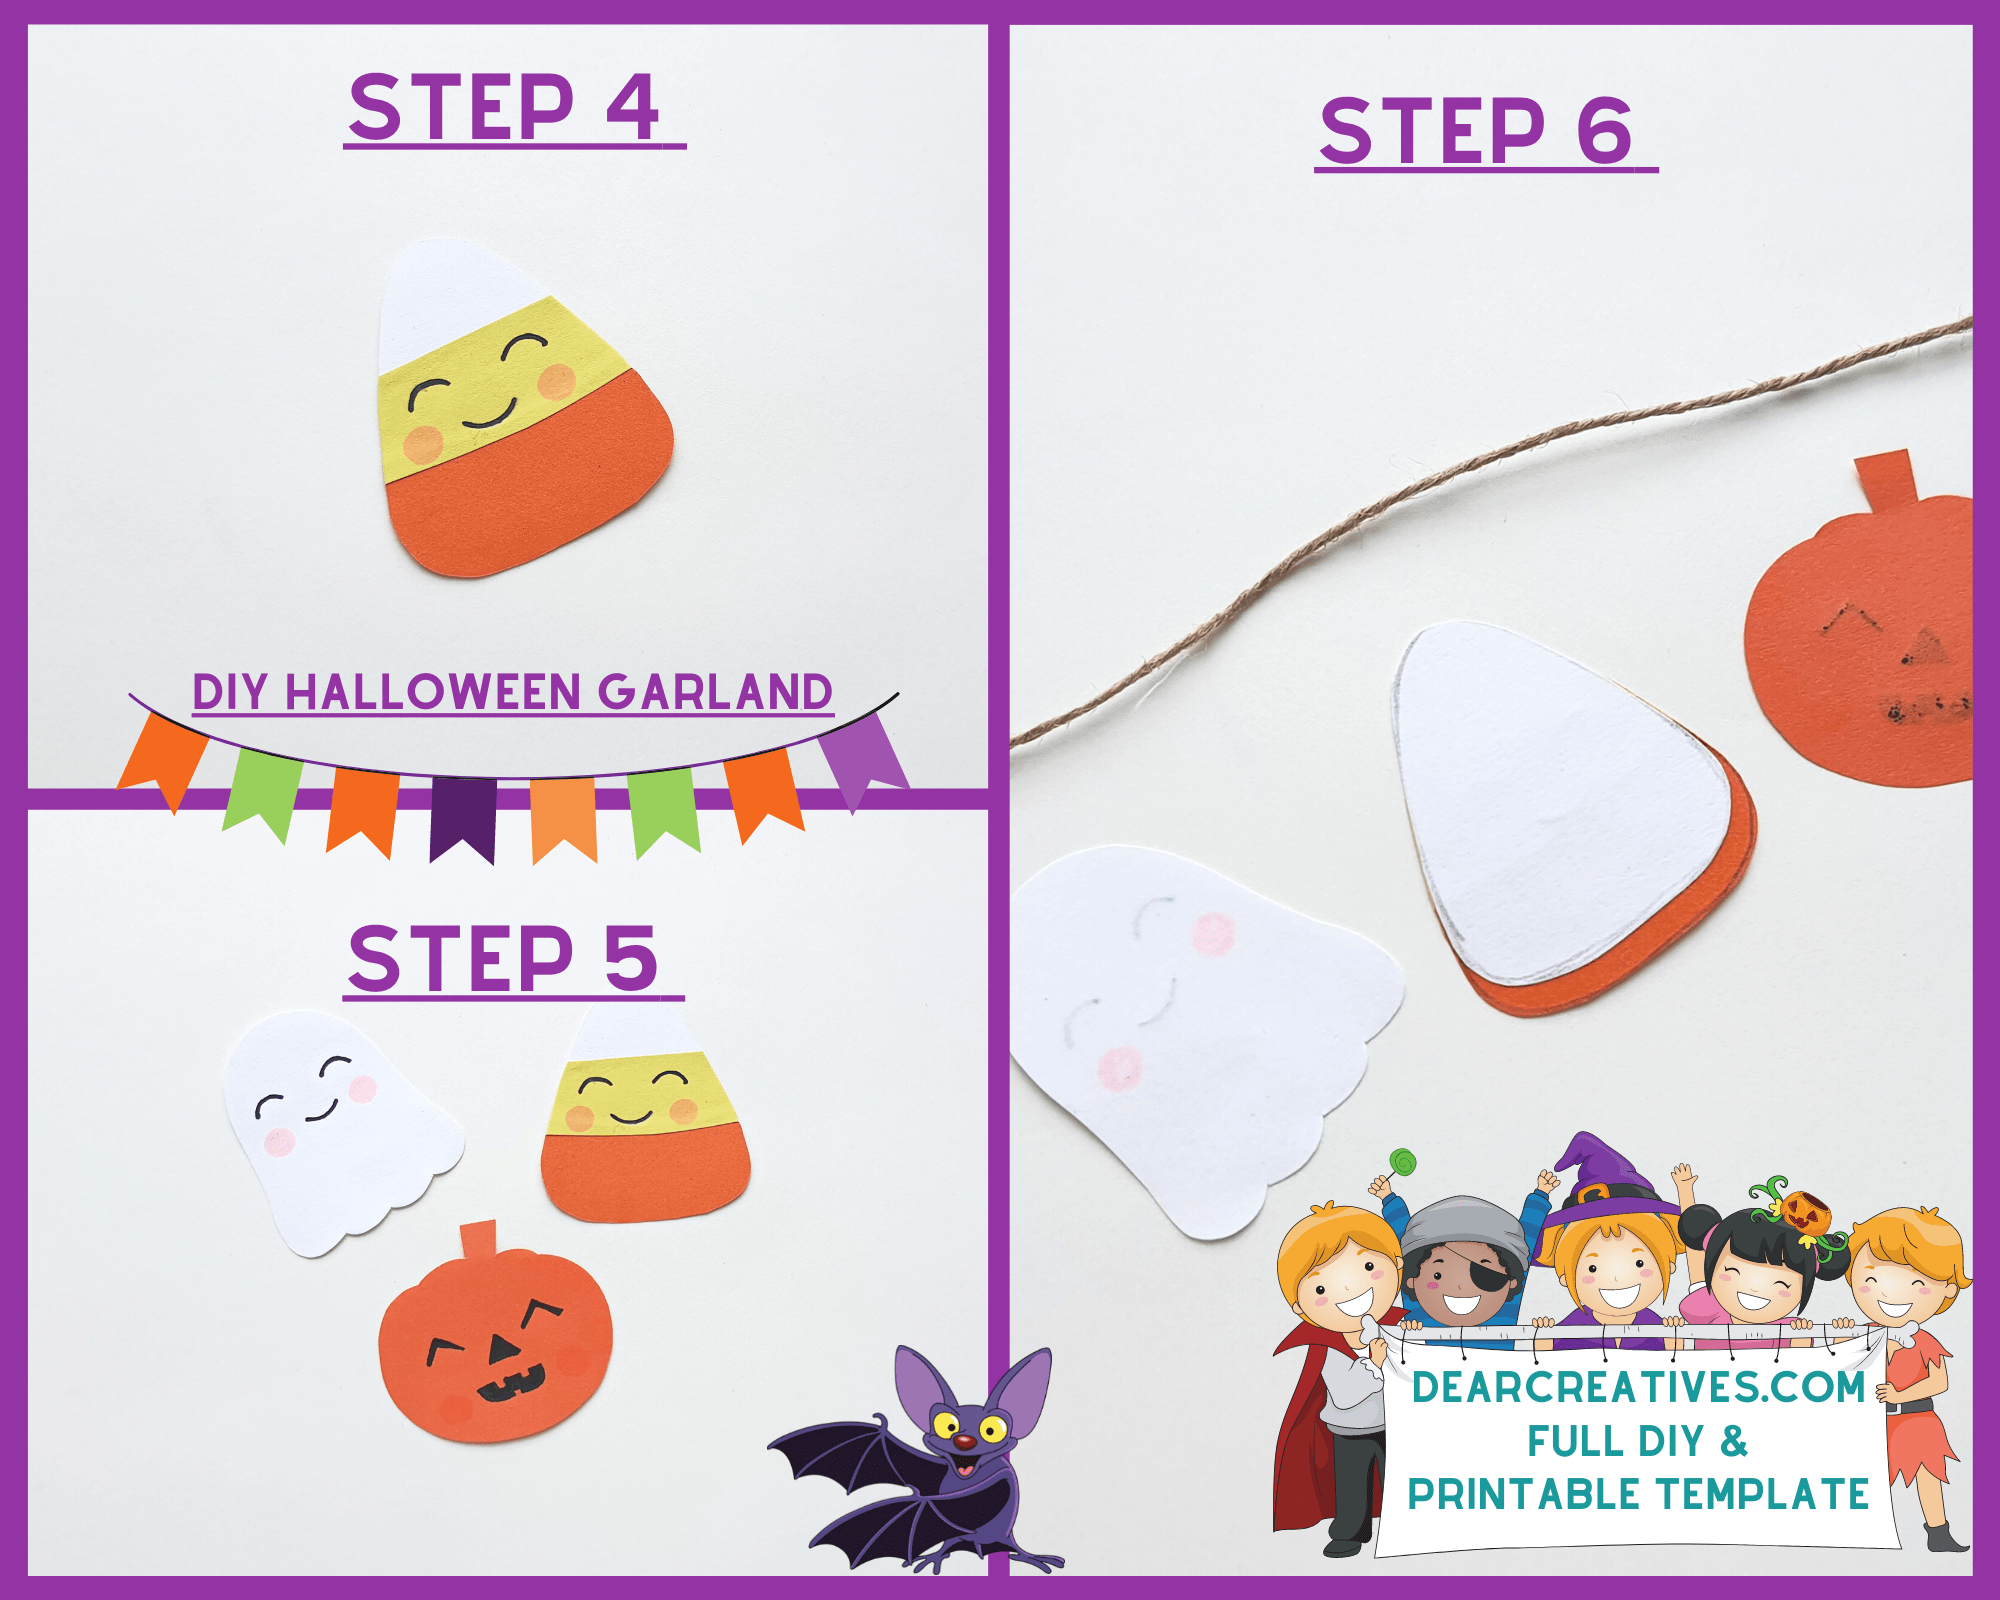 DIY Halloween banner - print the template - Trace the template patterns on the selected craft papers. Full tutorial and template at DearCreatives.com